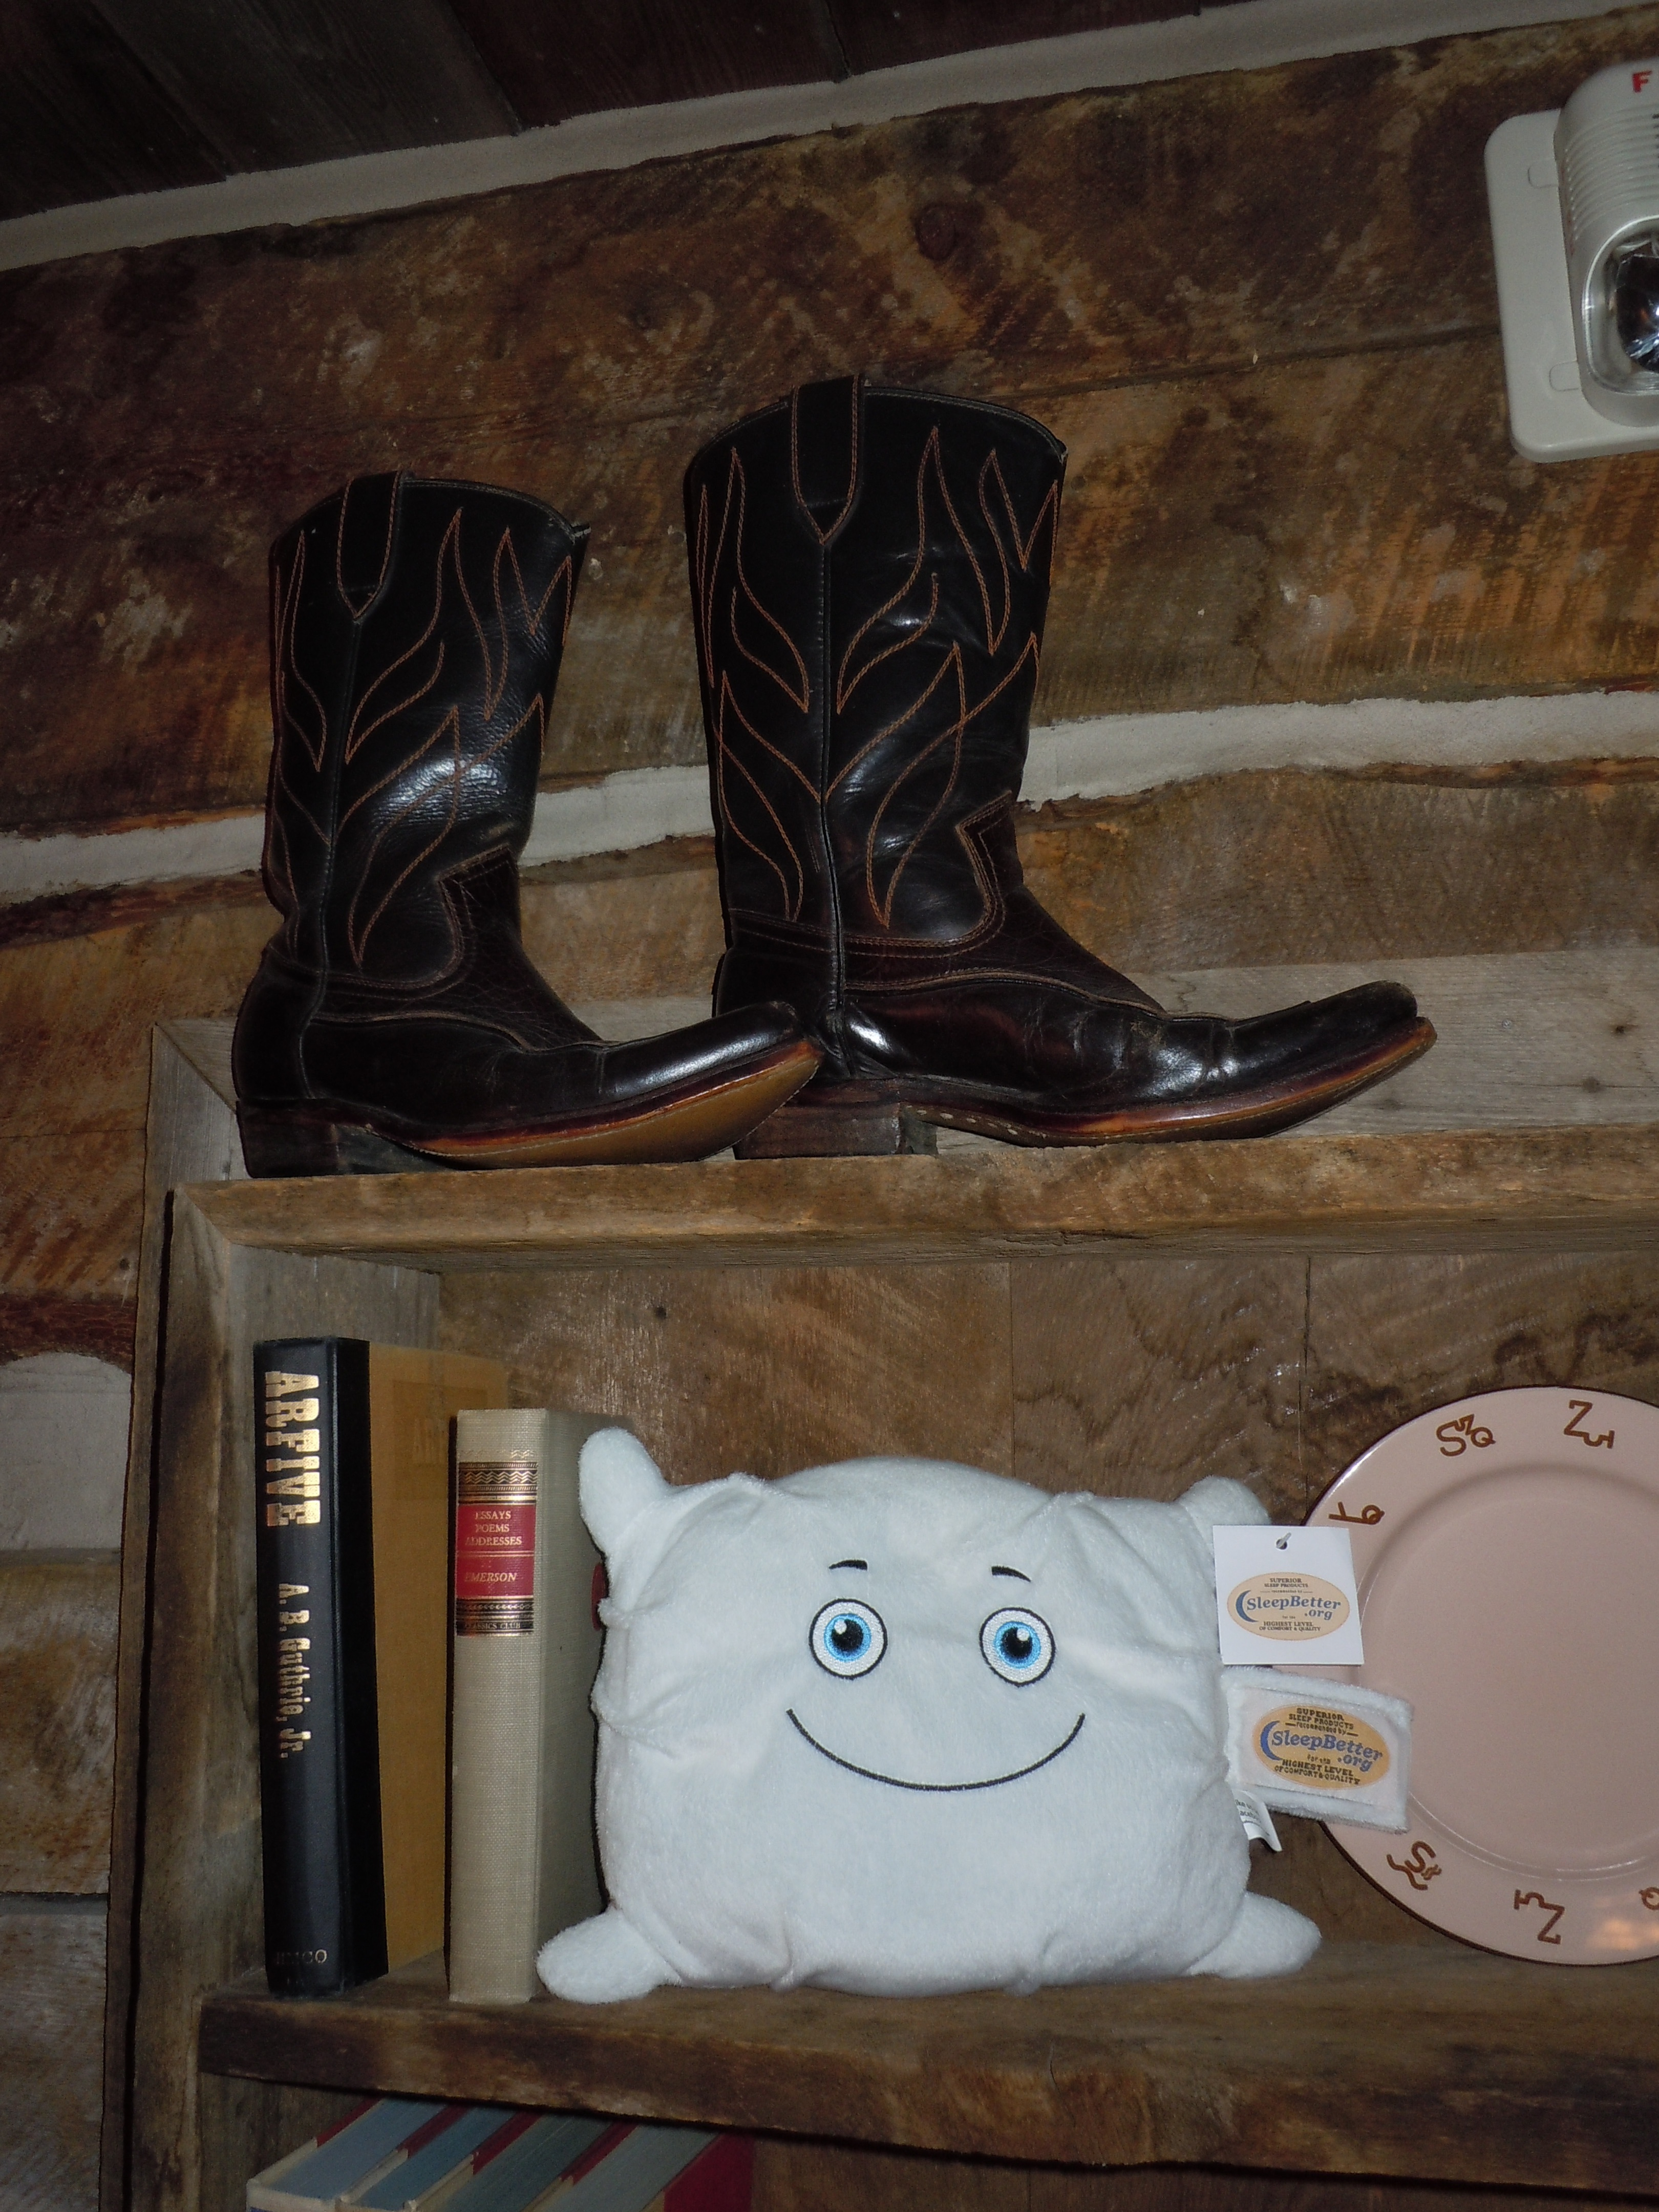 Fluffy is wishing he could wear boots